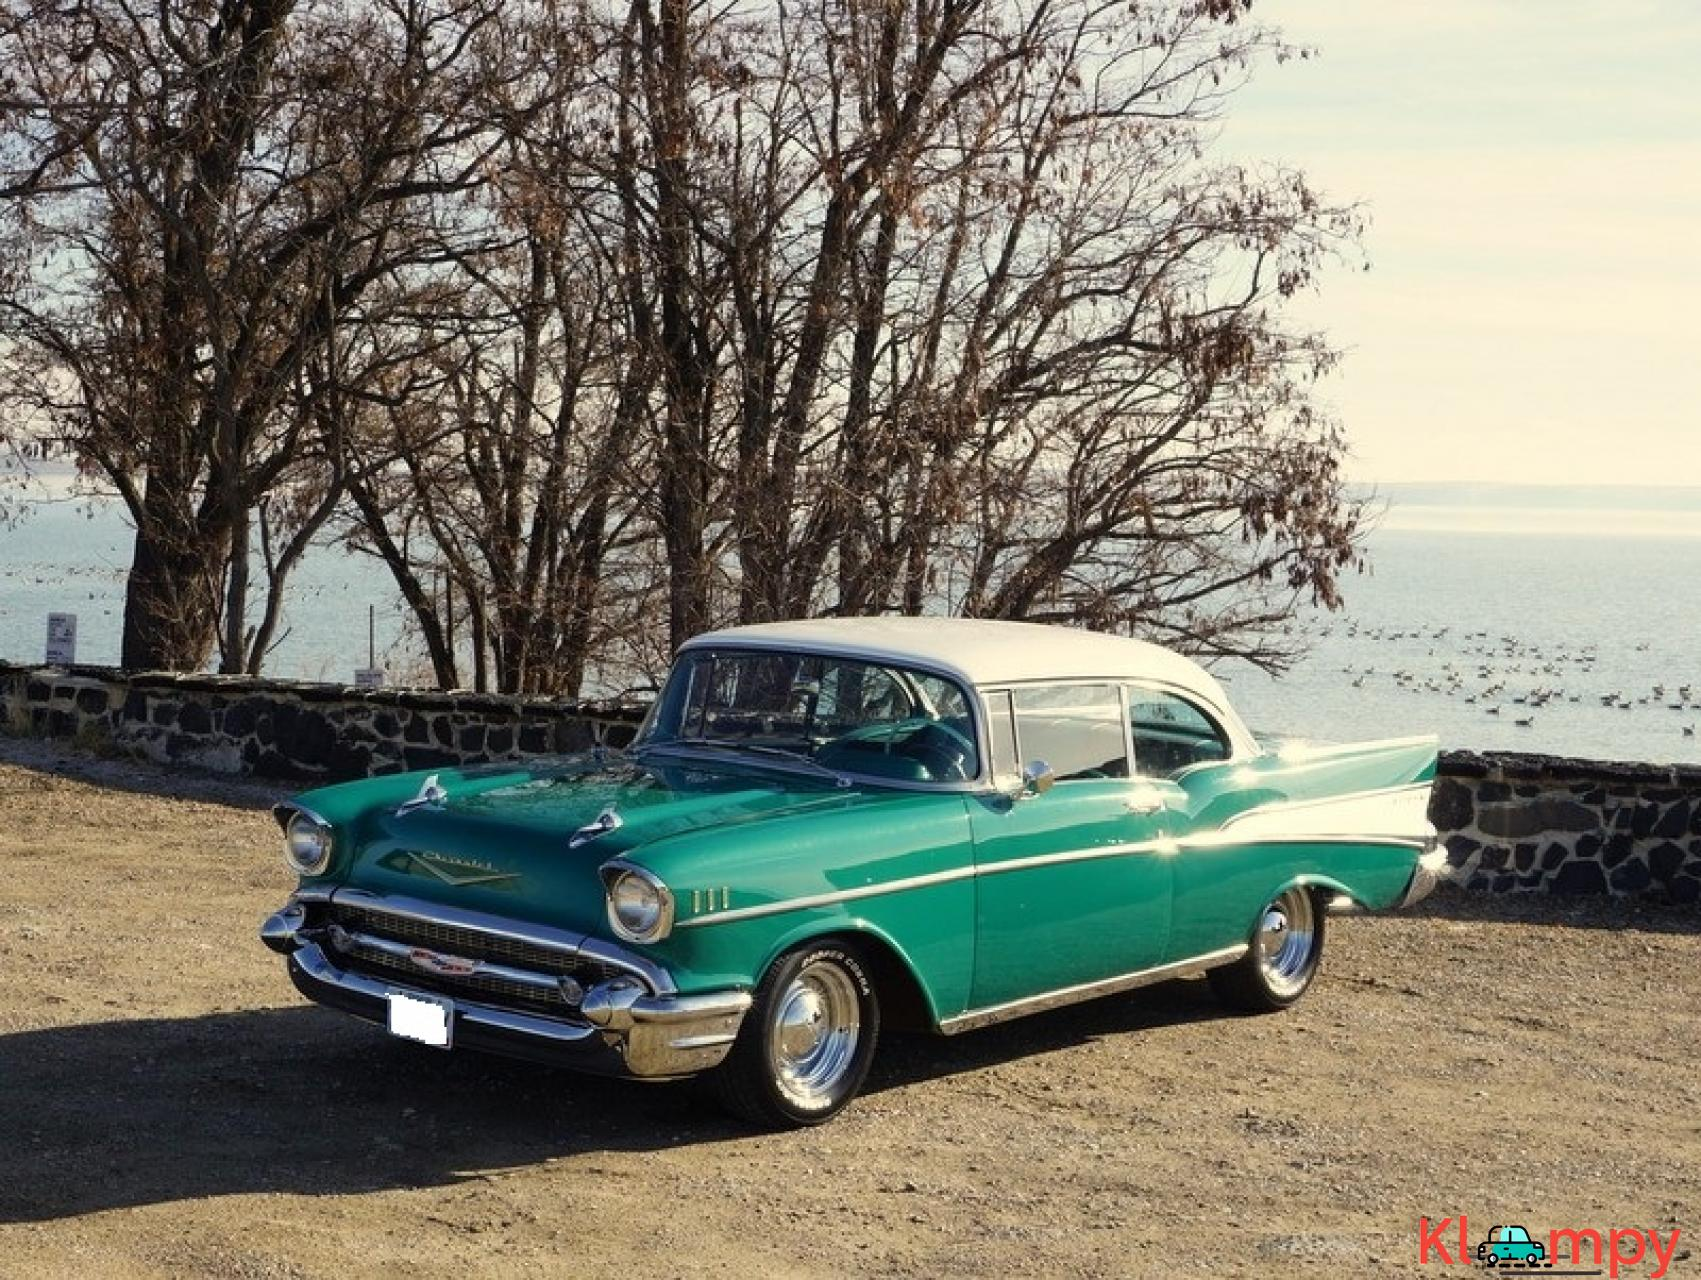 1957 Chevrolet Bel Air 150 210 Hardtop - 7/20